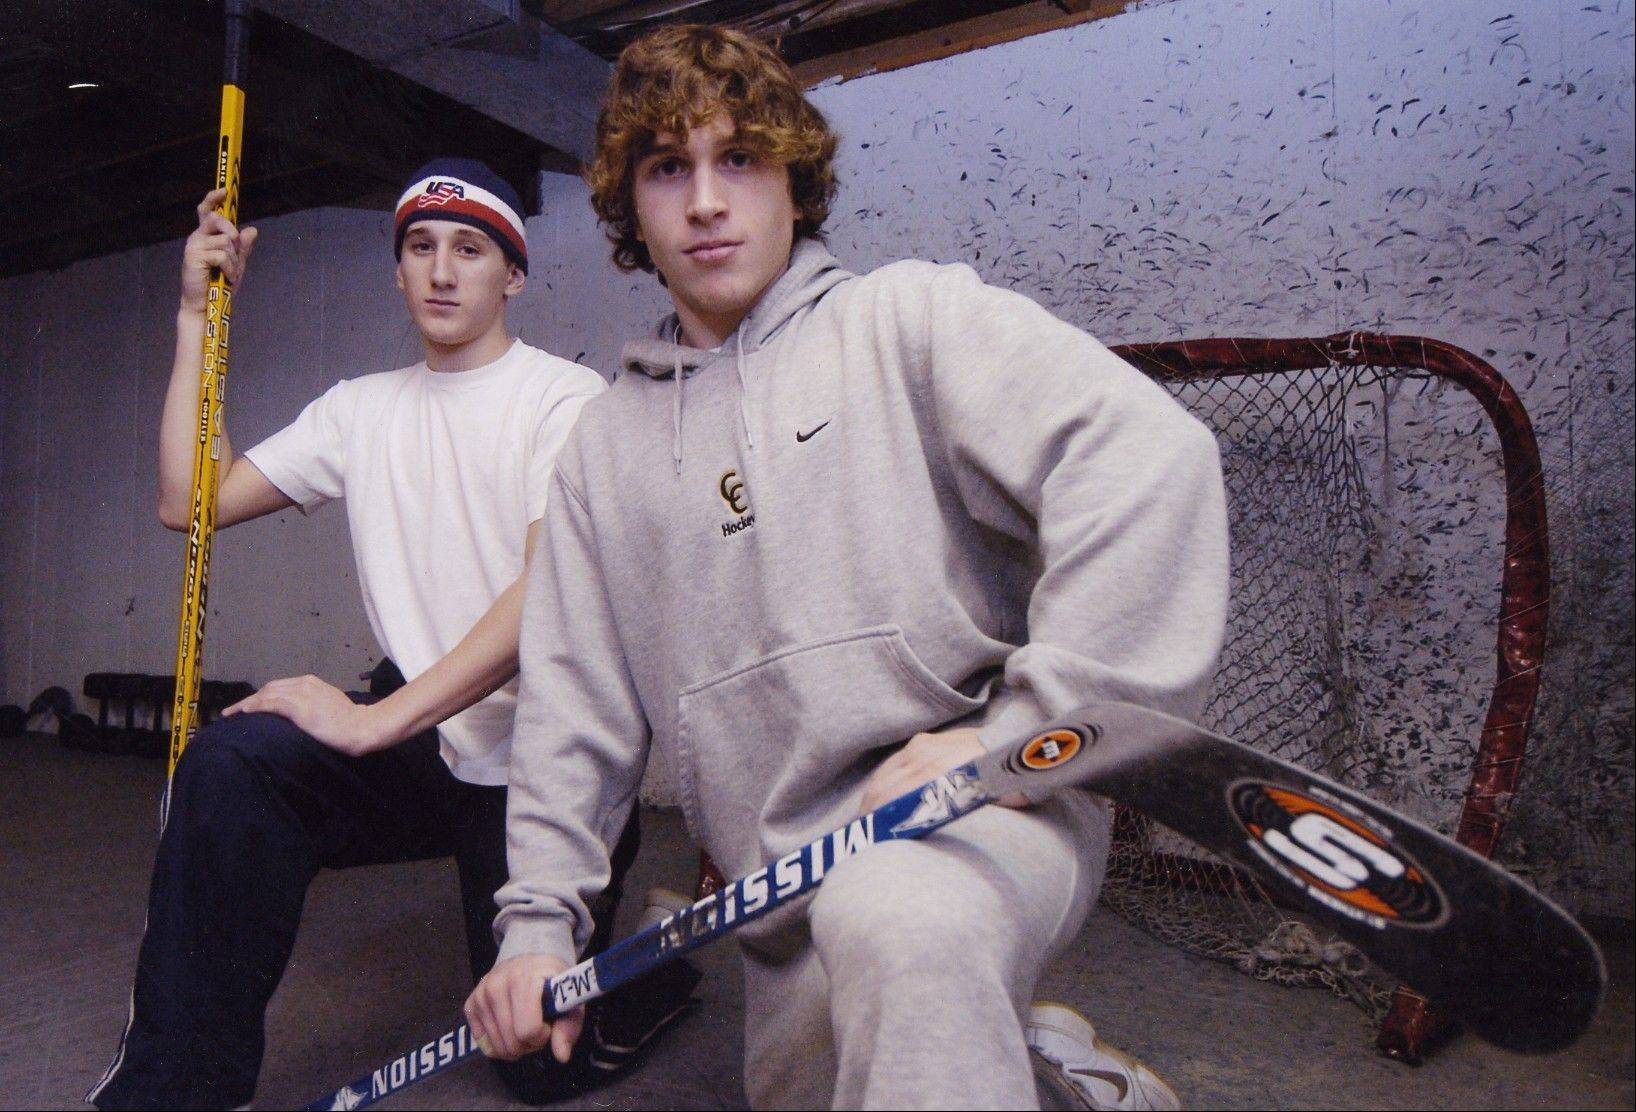 Billy Sweatt, background, and his older brother Lee spent a lot of time taking slap shots in the family basement when they weren't practicing at local arenas. Lee played professional hockey in Europe and briefly with the Vancouver Canucks before retiring last summer, while Lee was called up by the Canucks for a brief stay in December.